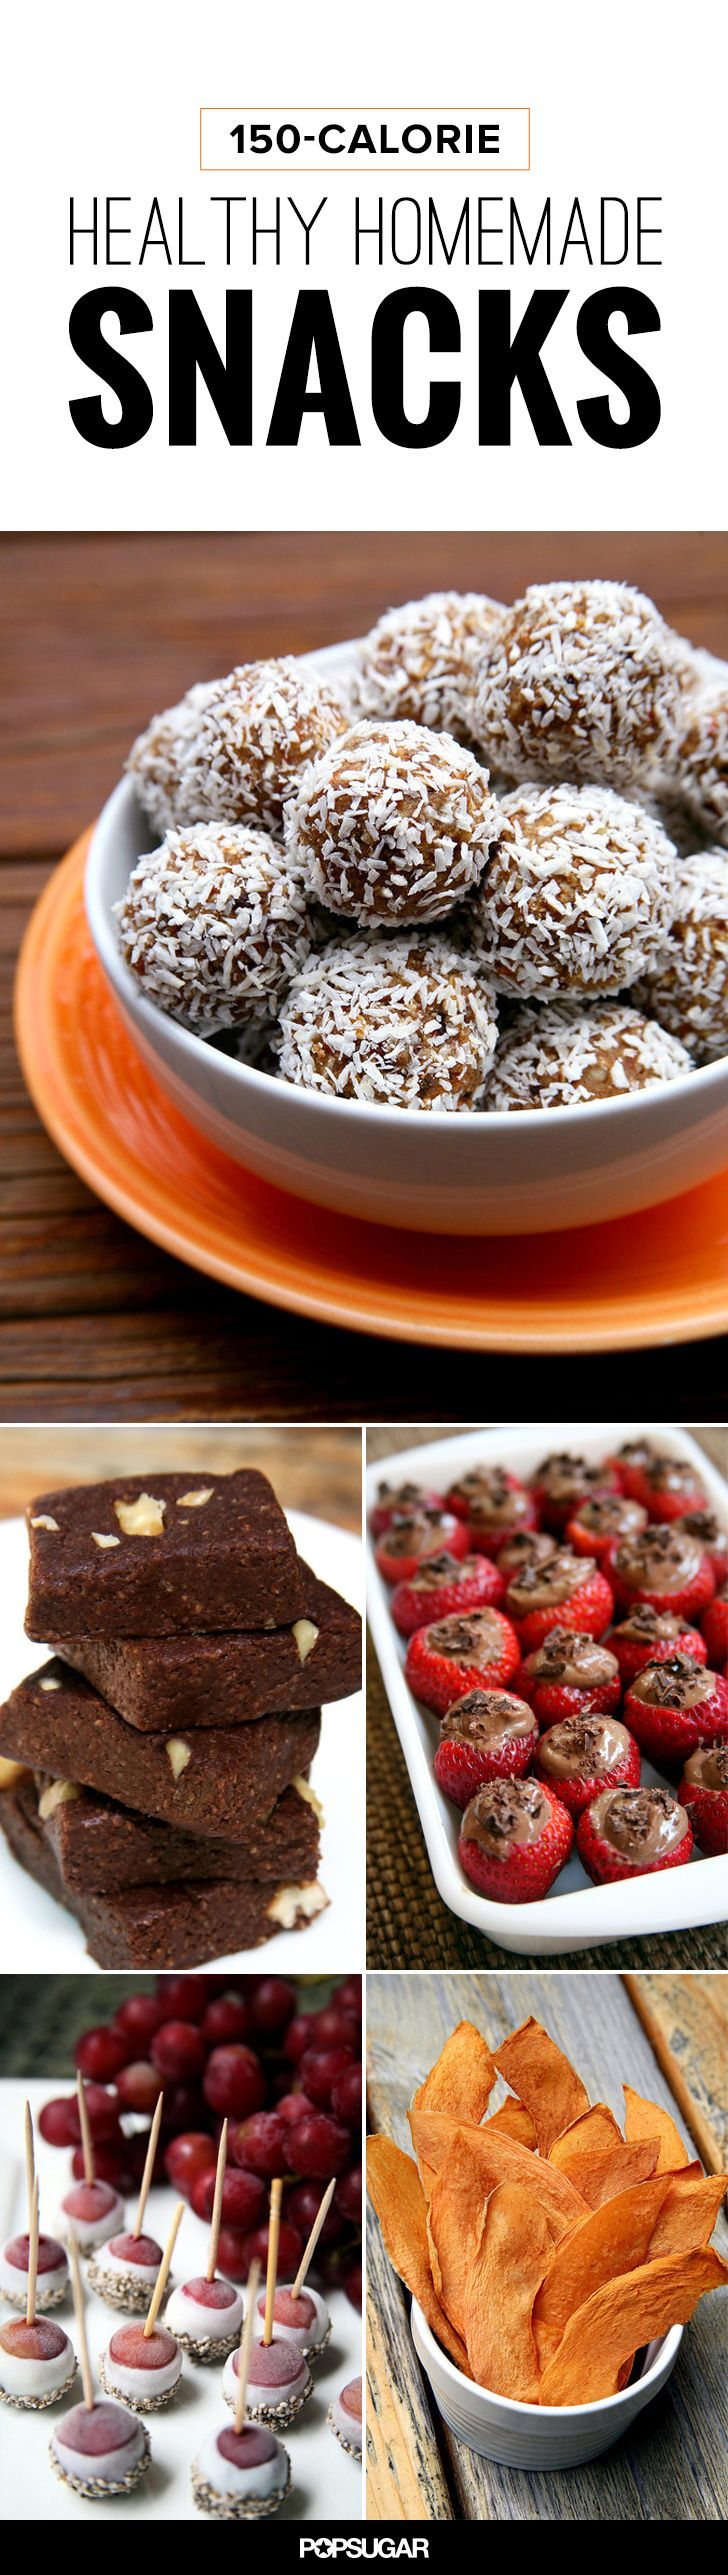 Cannot wait to try MOST of these! 45 Snacks to Satisfy Hunger, All Under 150 Calories